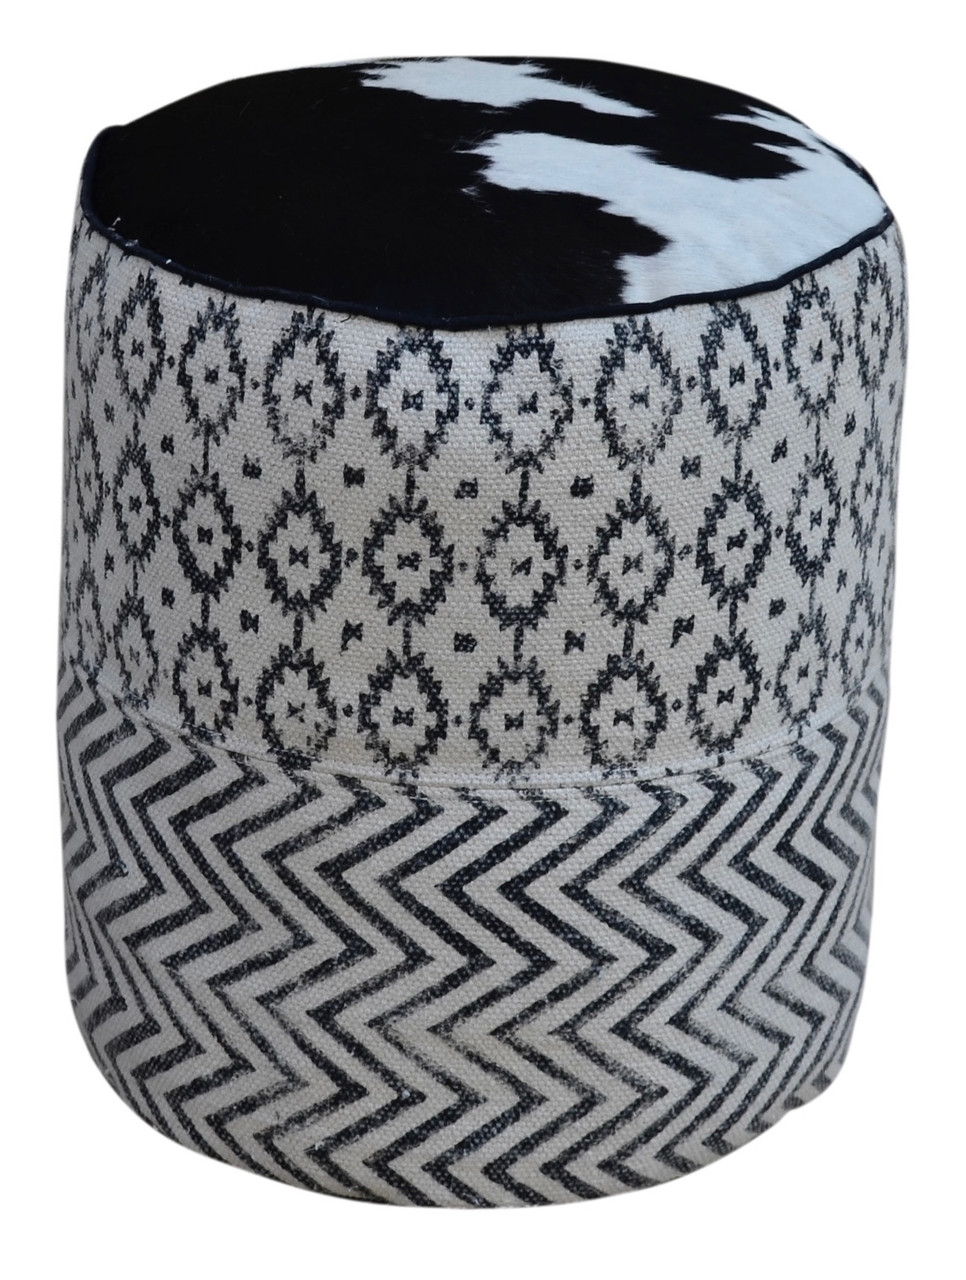 Surprising Uma Black White Patterned Round Pouf With Cowhide Top Dailytribune Chair Design For Home Dailytribuneorg